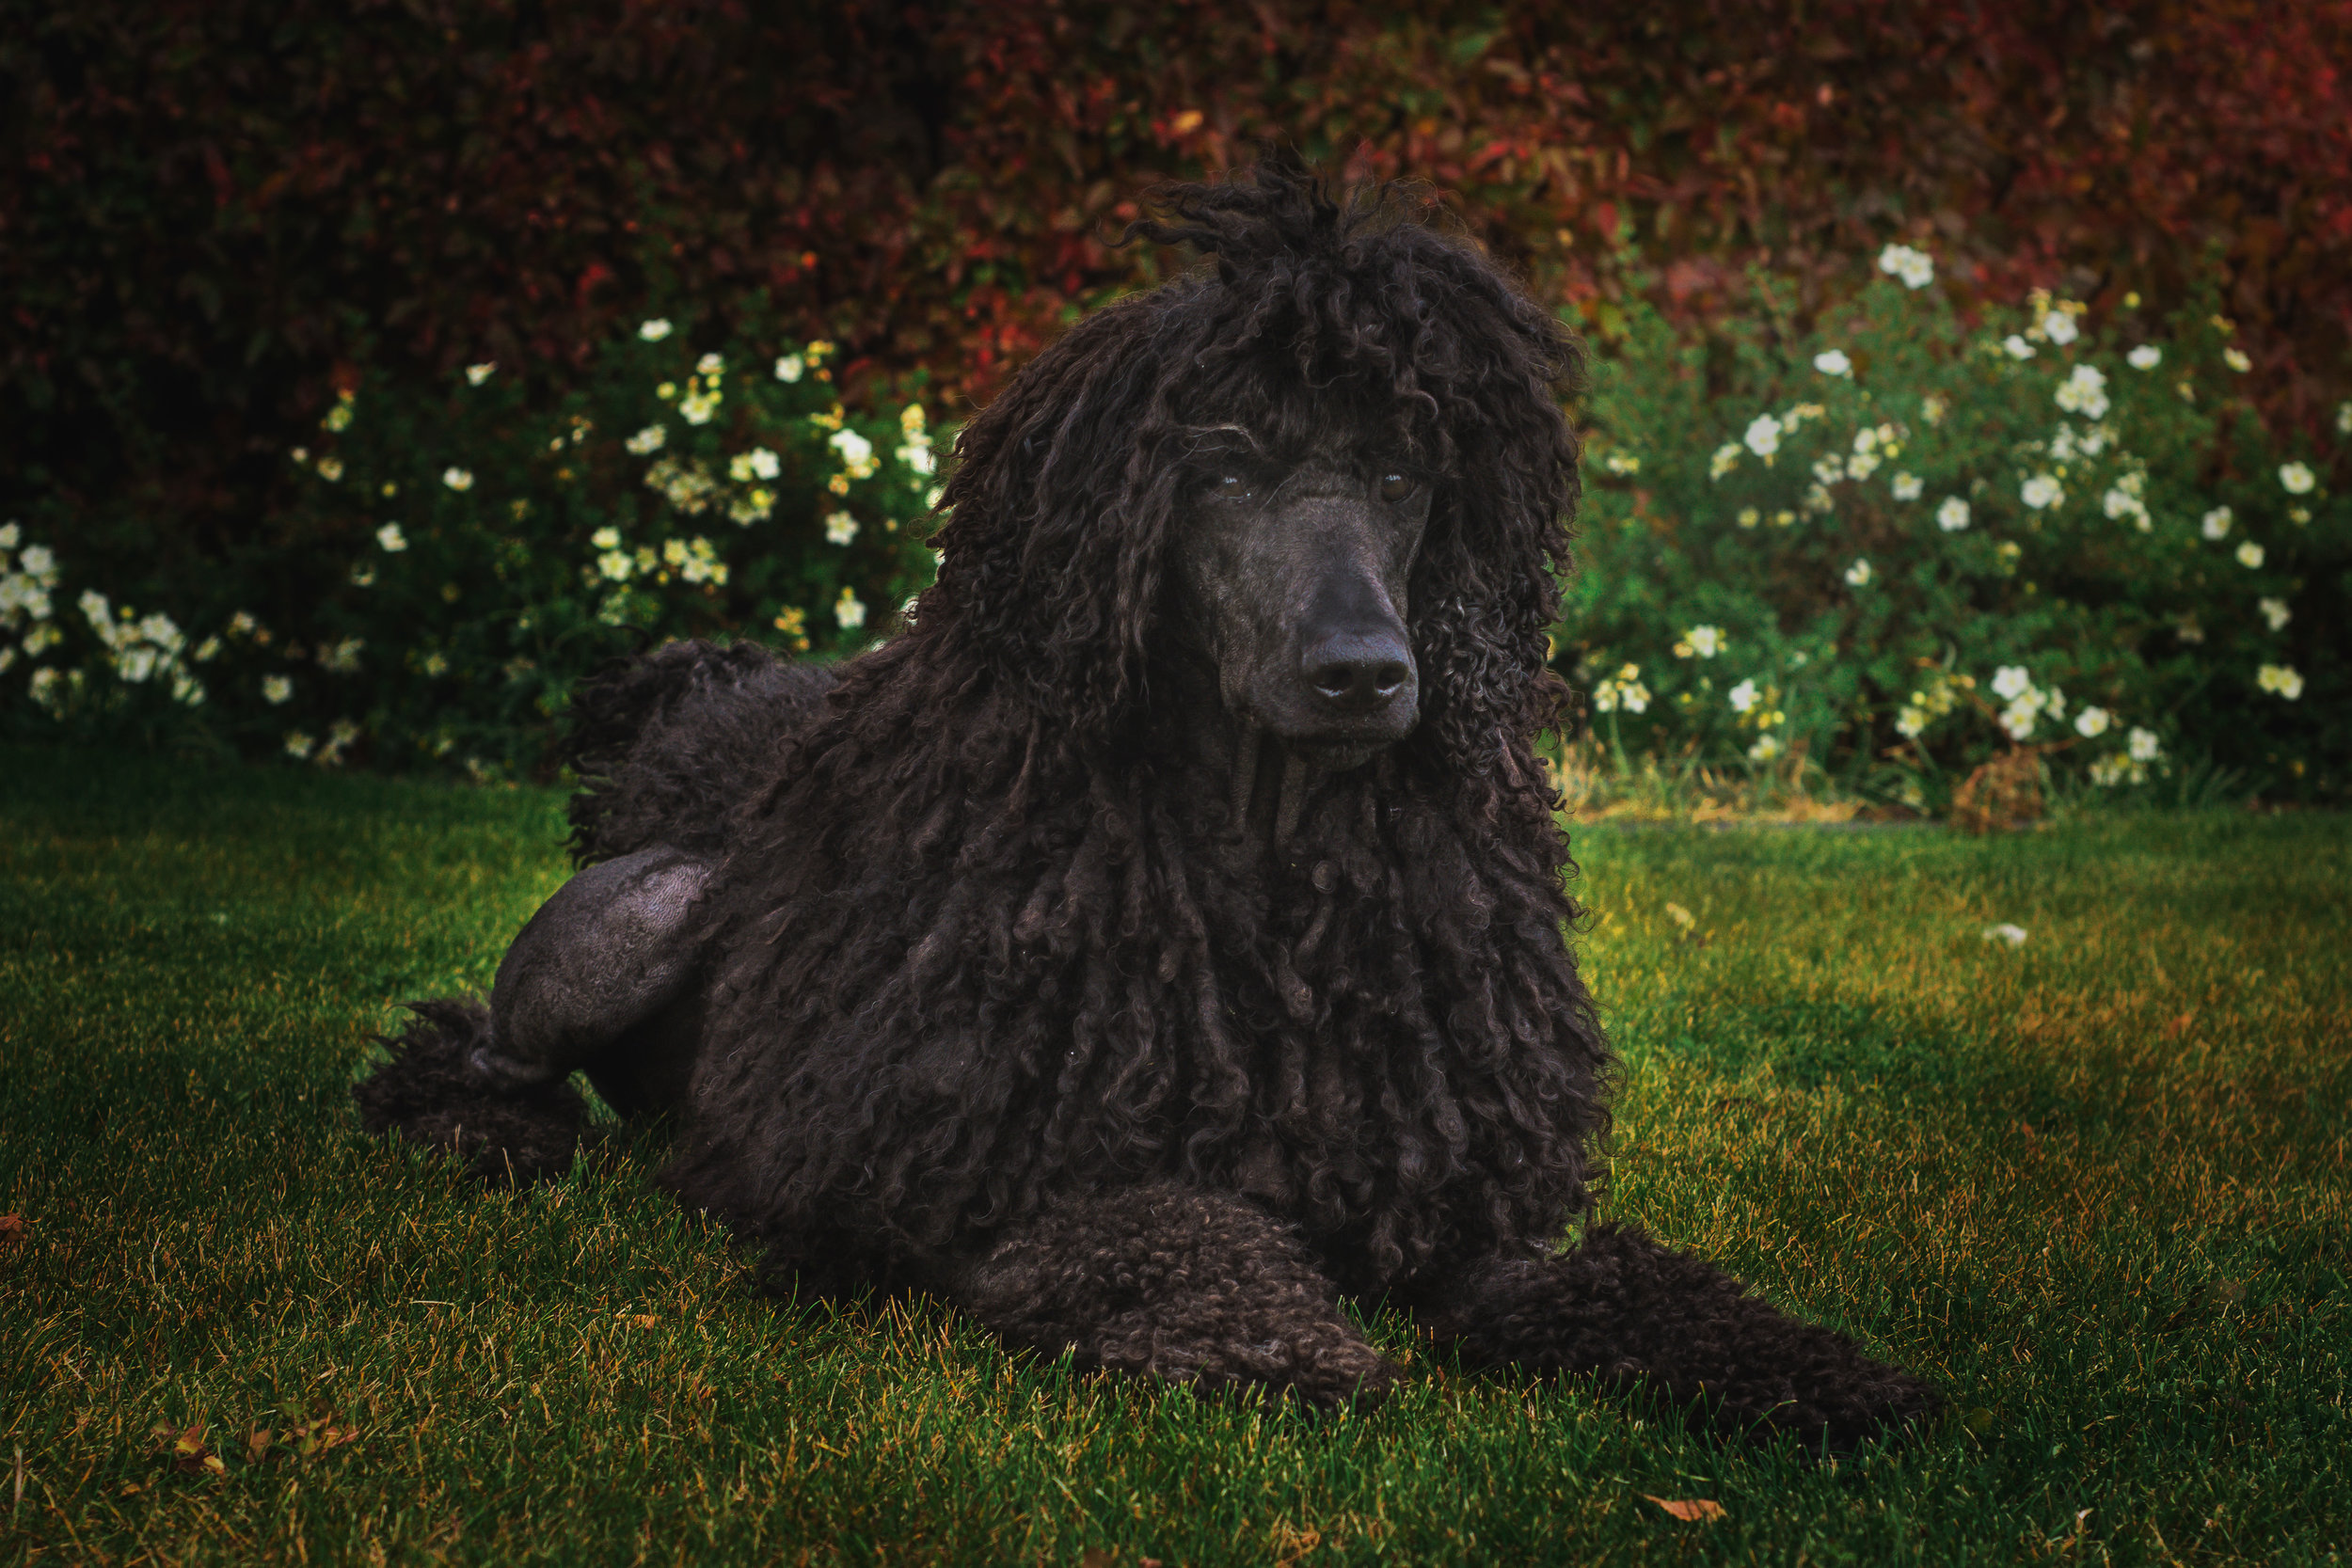 Poodle hair makes for excellent cords. Corded poodles have a unique look, but do require regular upkeep.